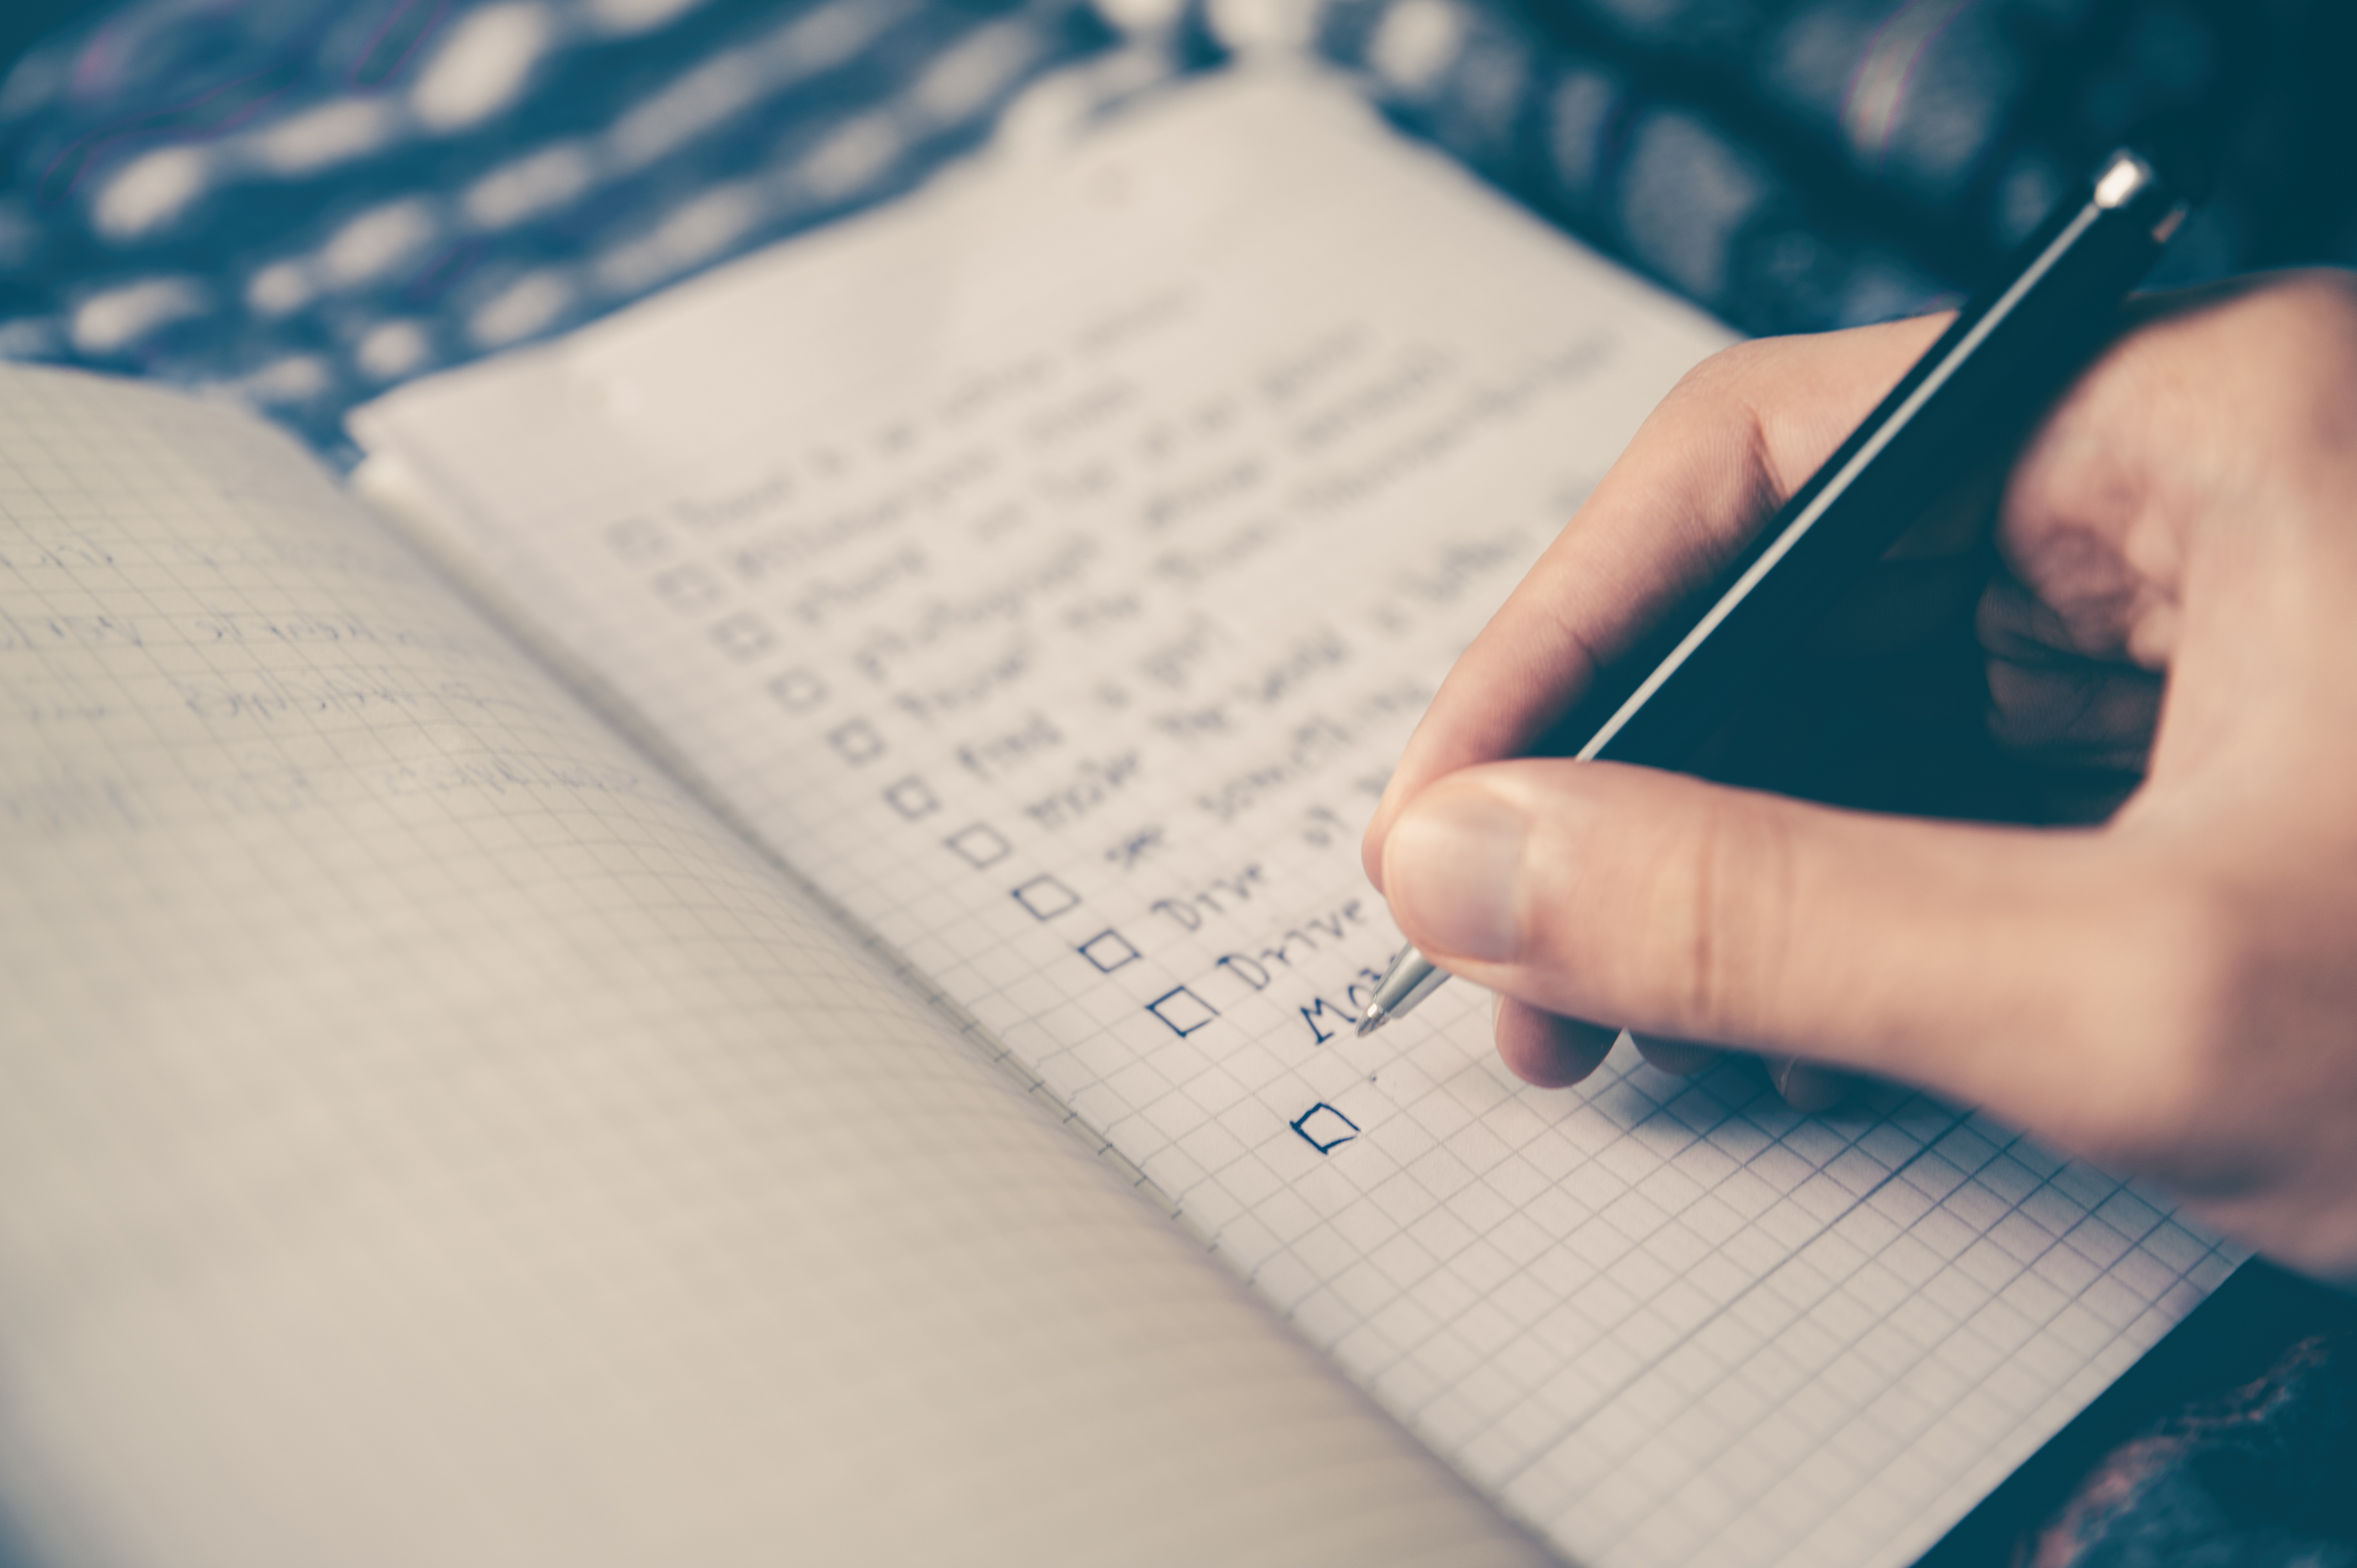 Organise Your To-Do List To Improve Creative Thinking